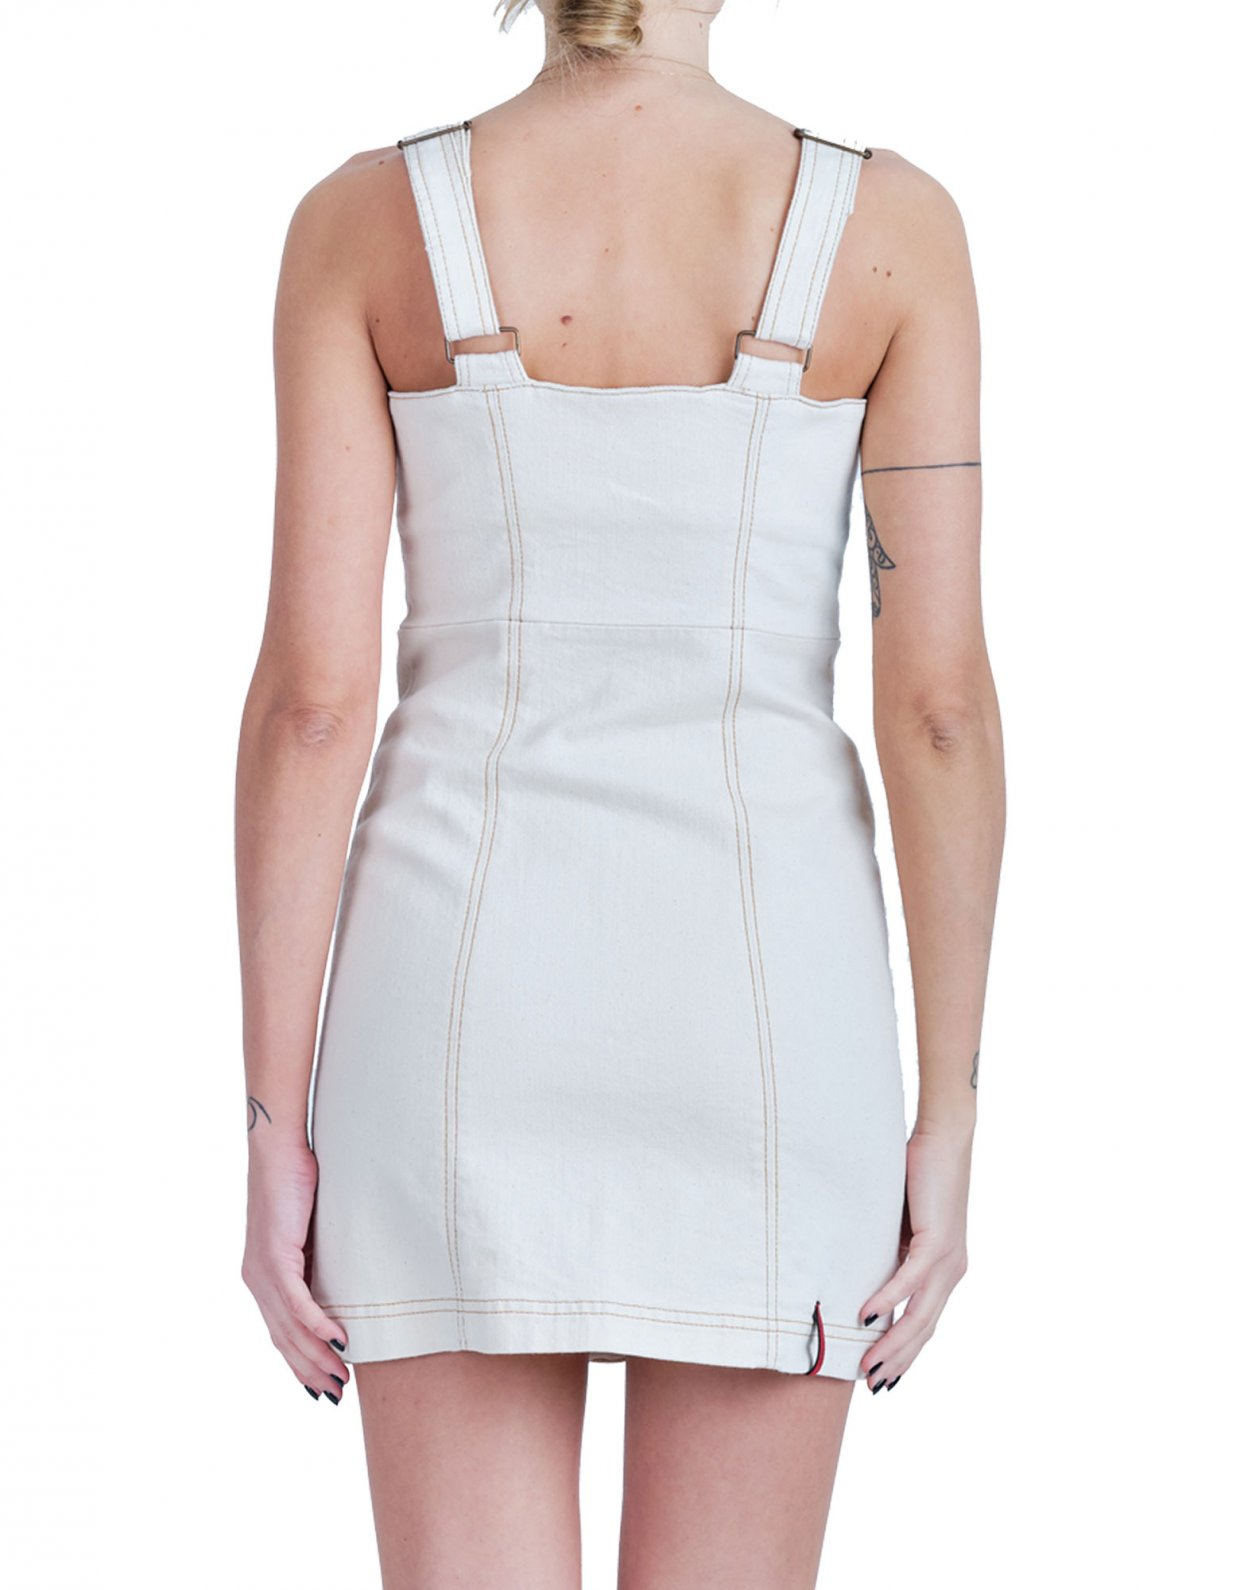 Salt & Pepper Elisa cream dress